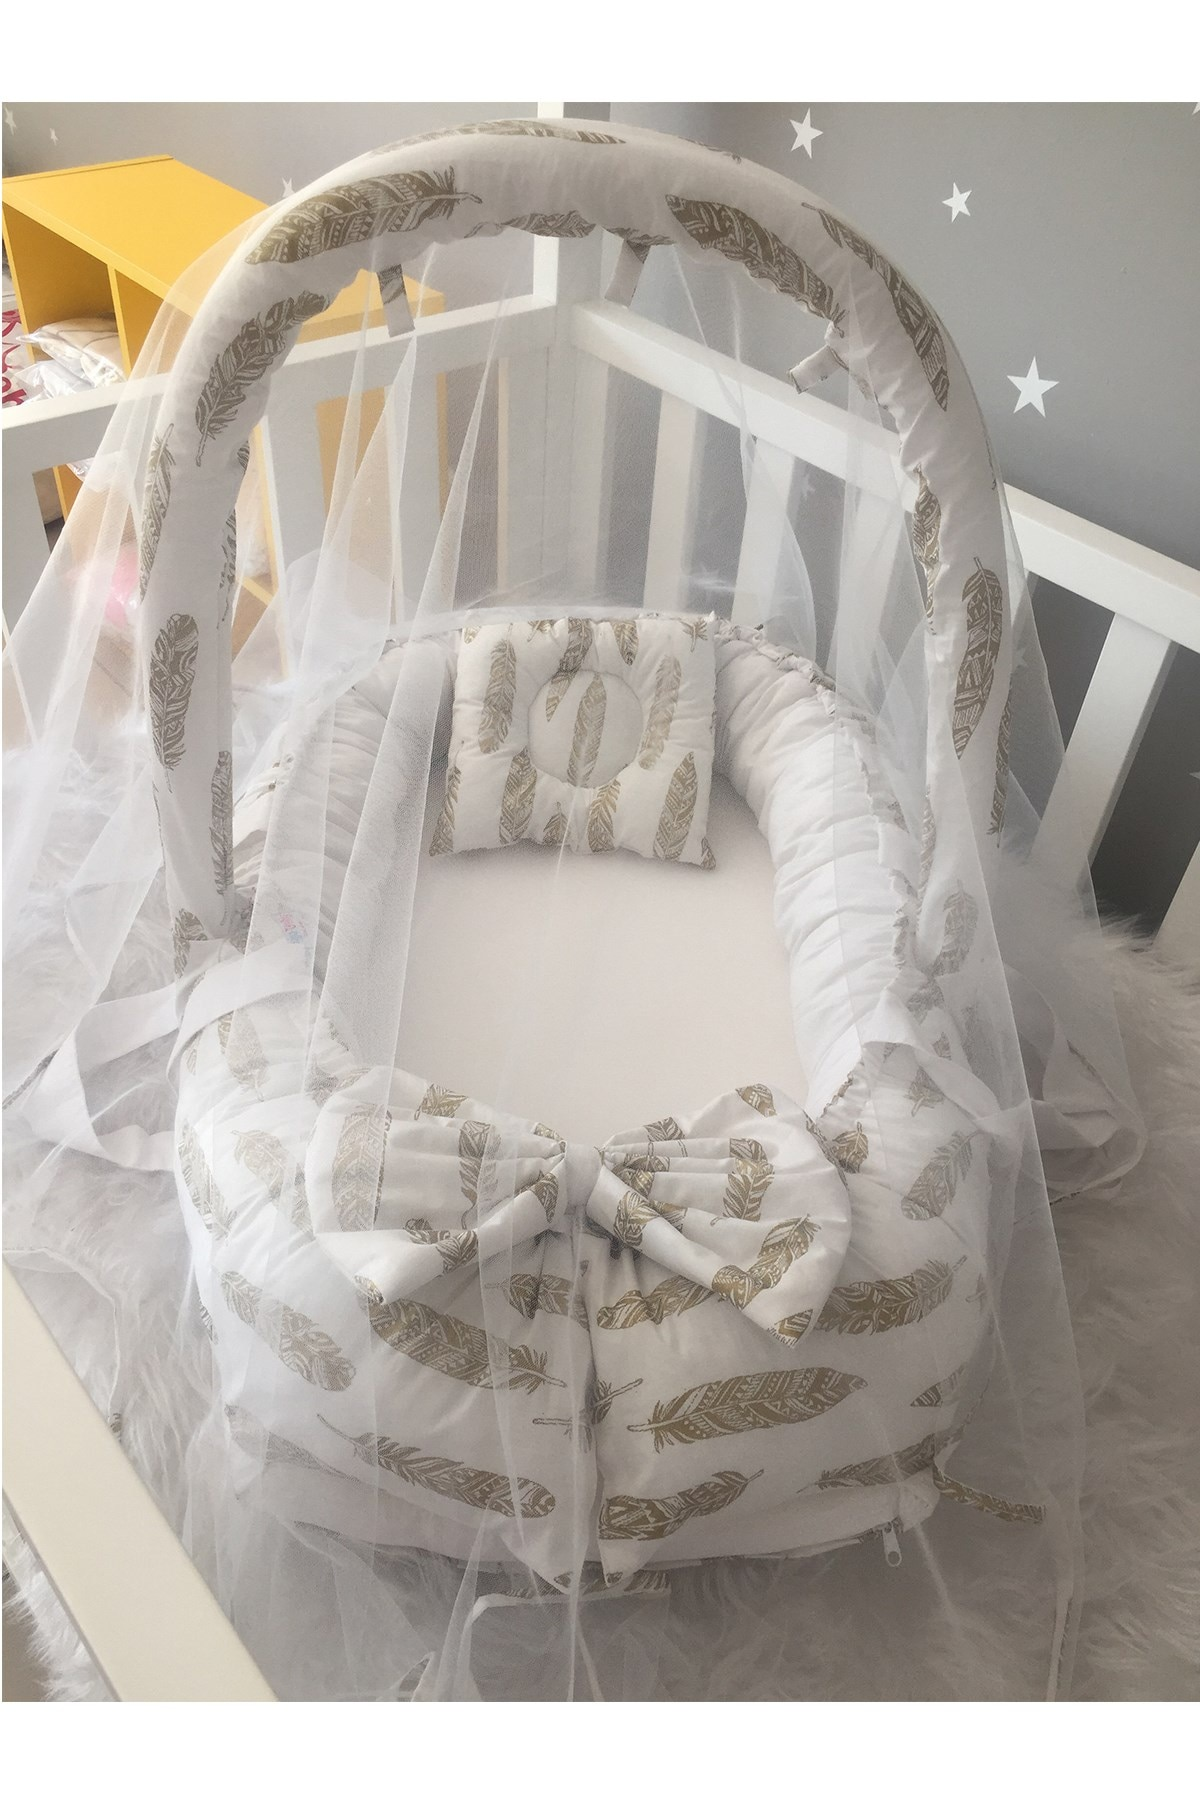 Jaju Baby Handmade Gold Feather Patterned Mosquito Net and Toy Hanger Luxury Design Babynest